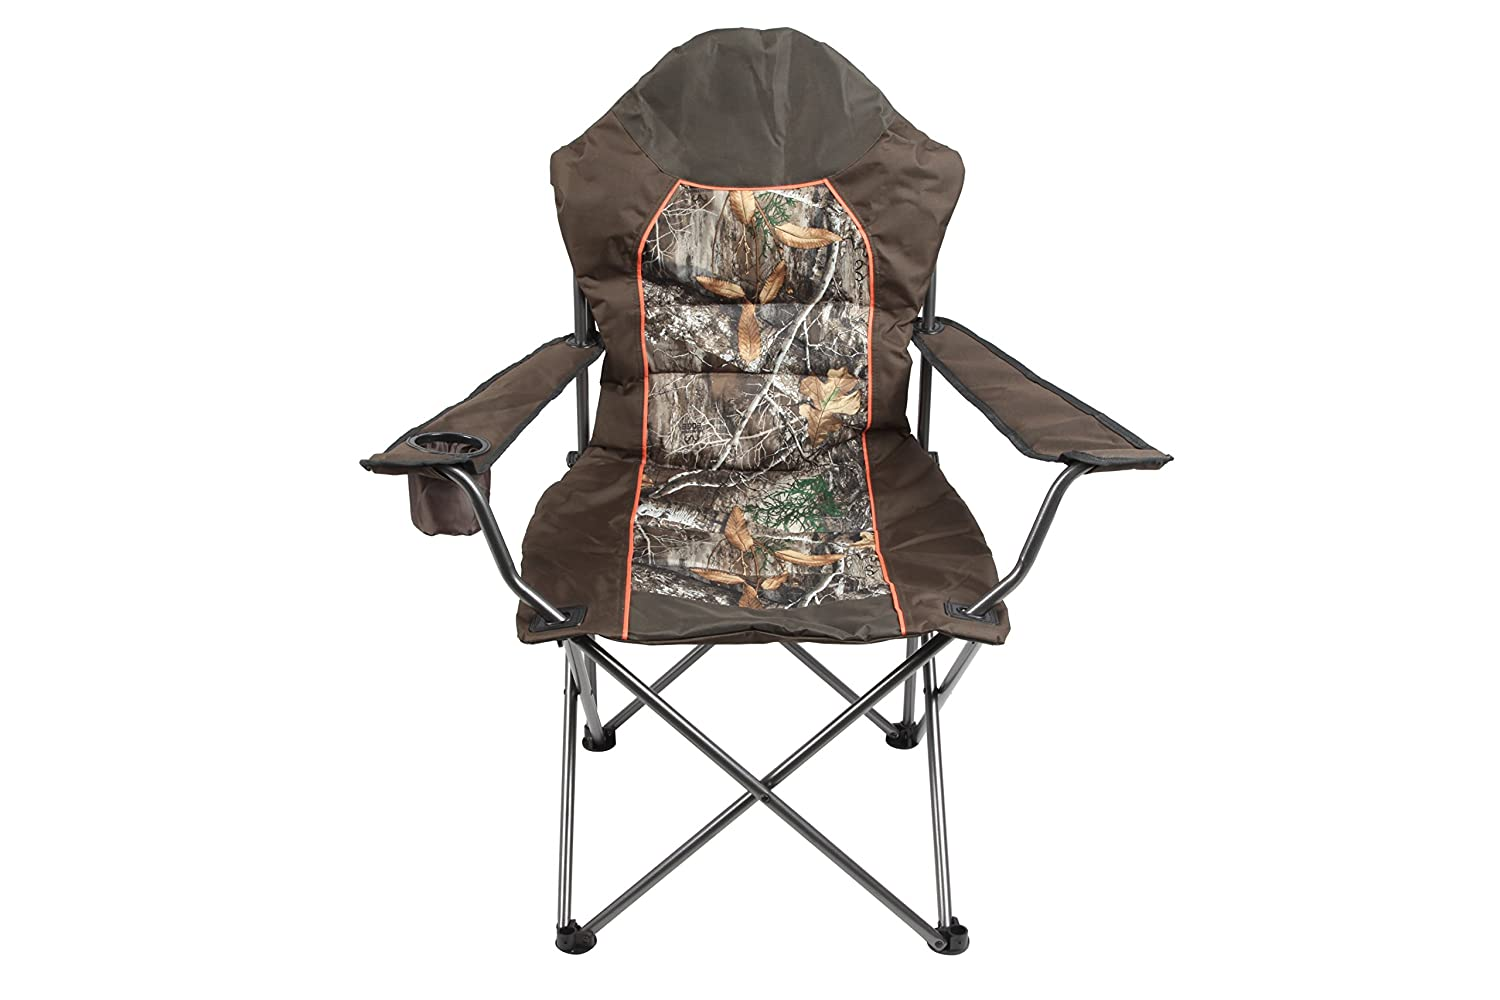 Westfield Outdoors Realtree Outfitter 椅子   B07FB7JD24